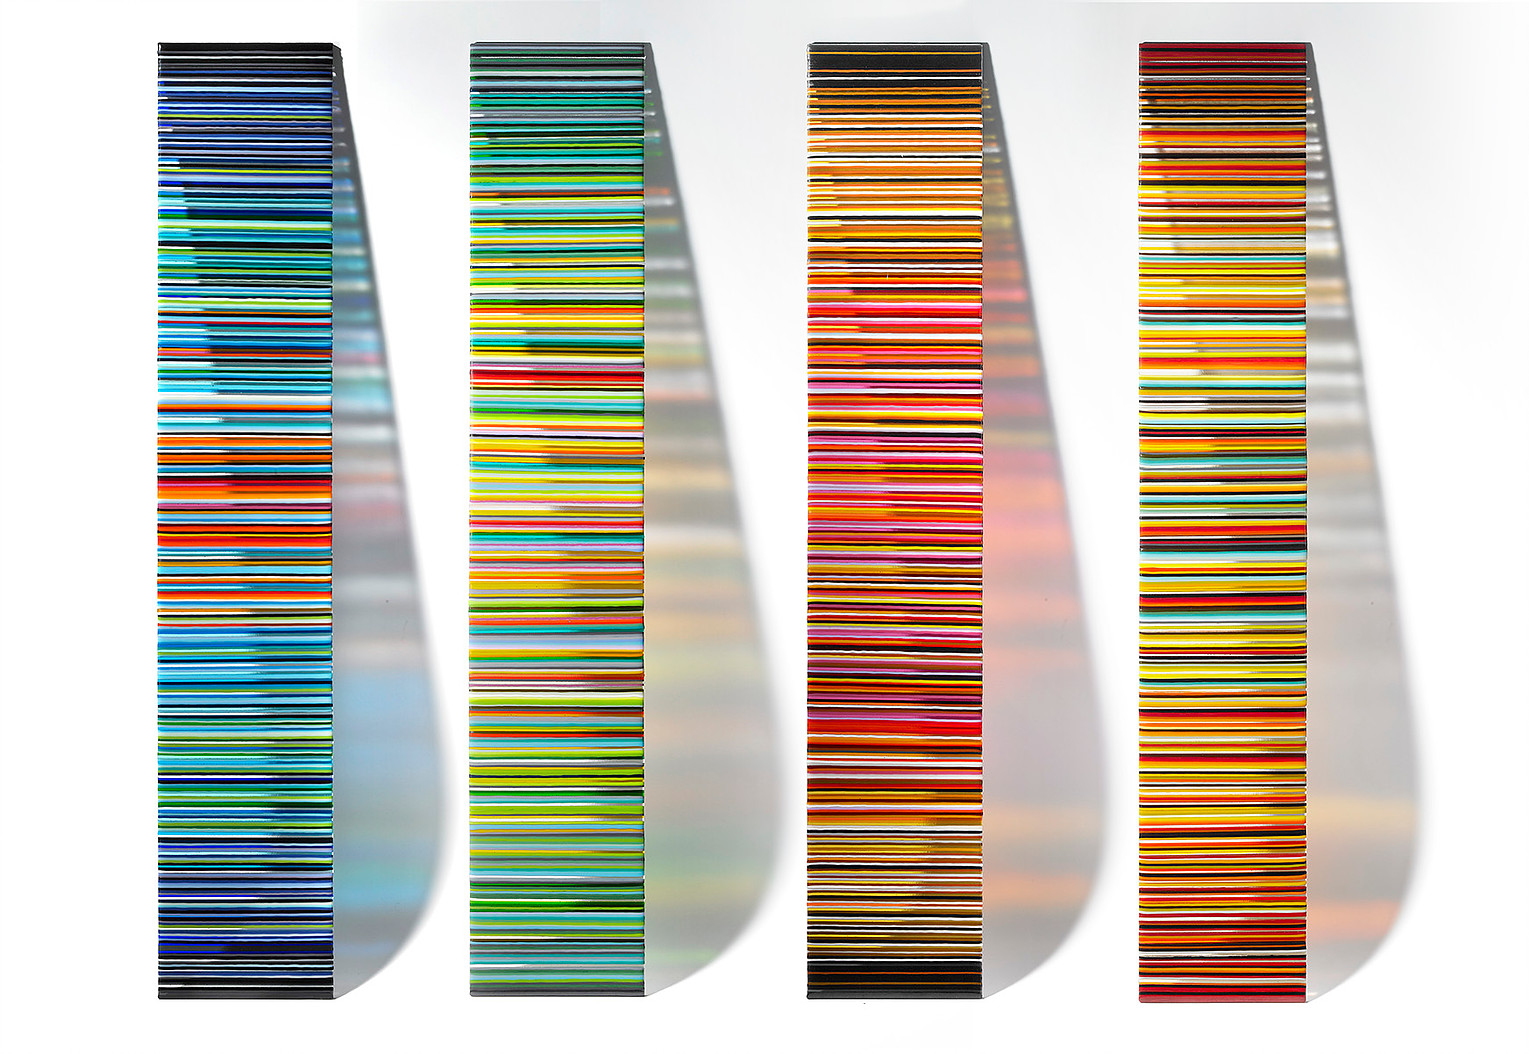 Looma Studios develops colorful custom glasswork in the form of vivid panels, tables, and more.